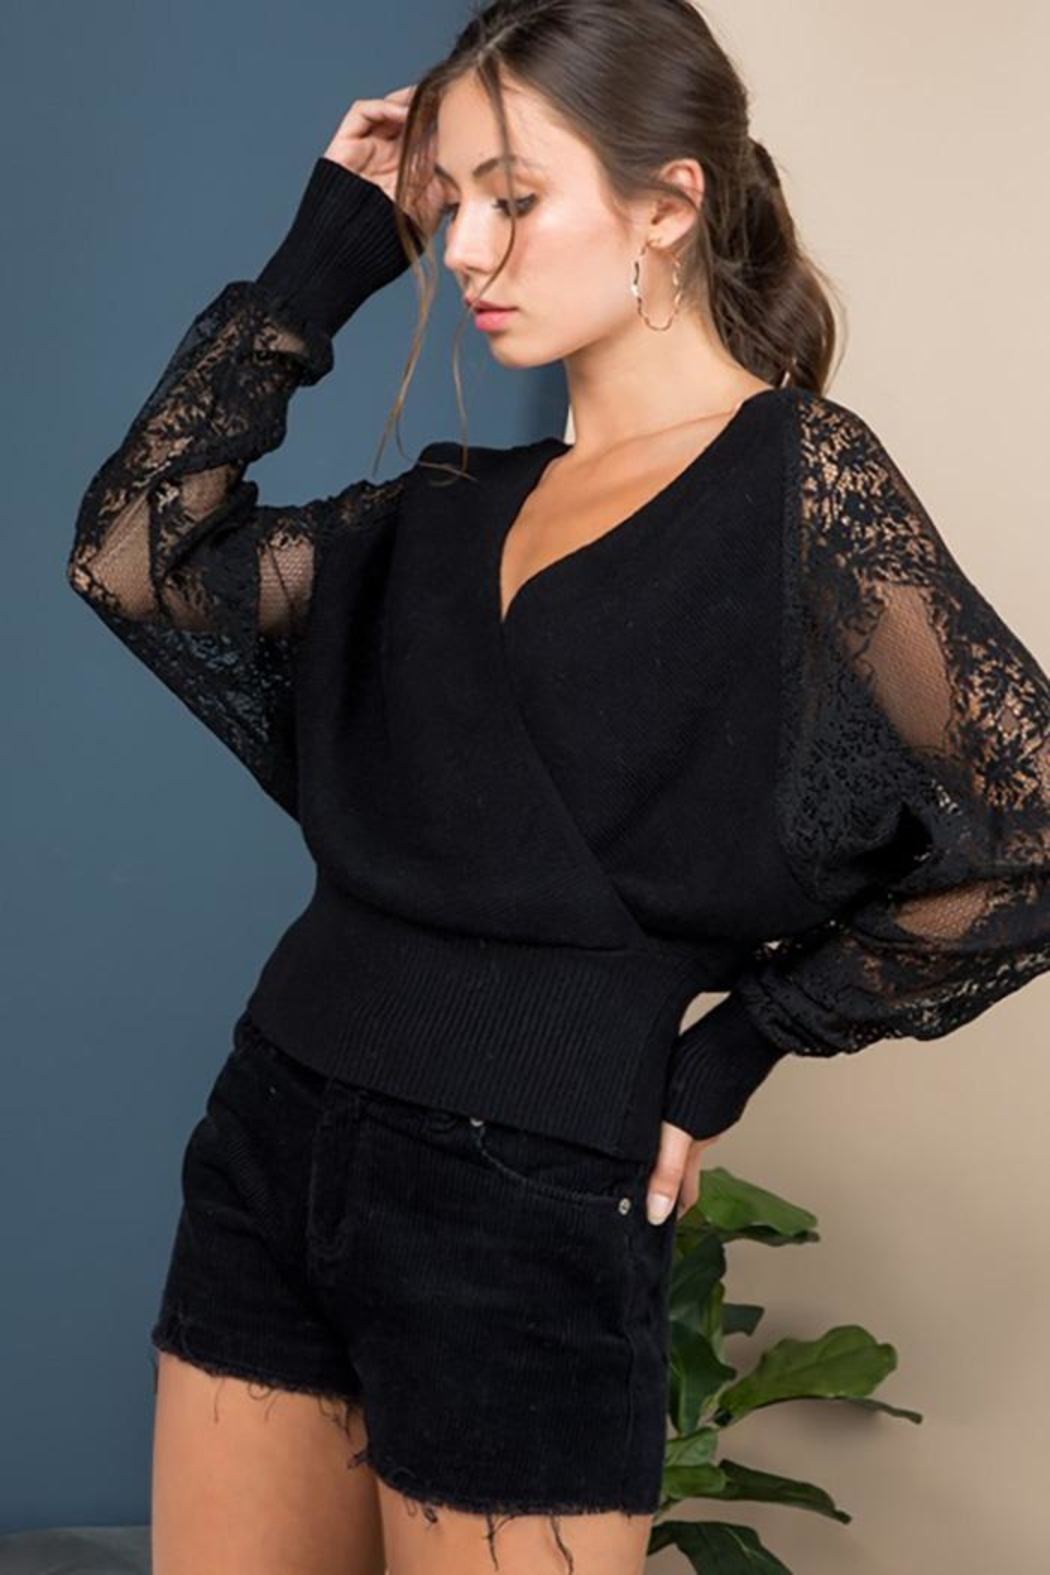 Blue B Floral-Lace Sleeves Sweater Top - Main Image